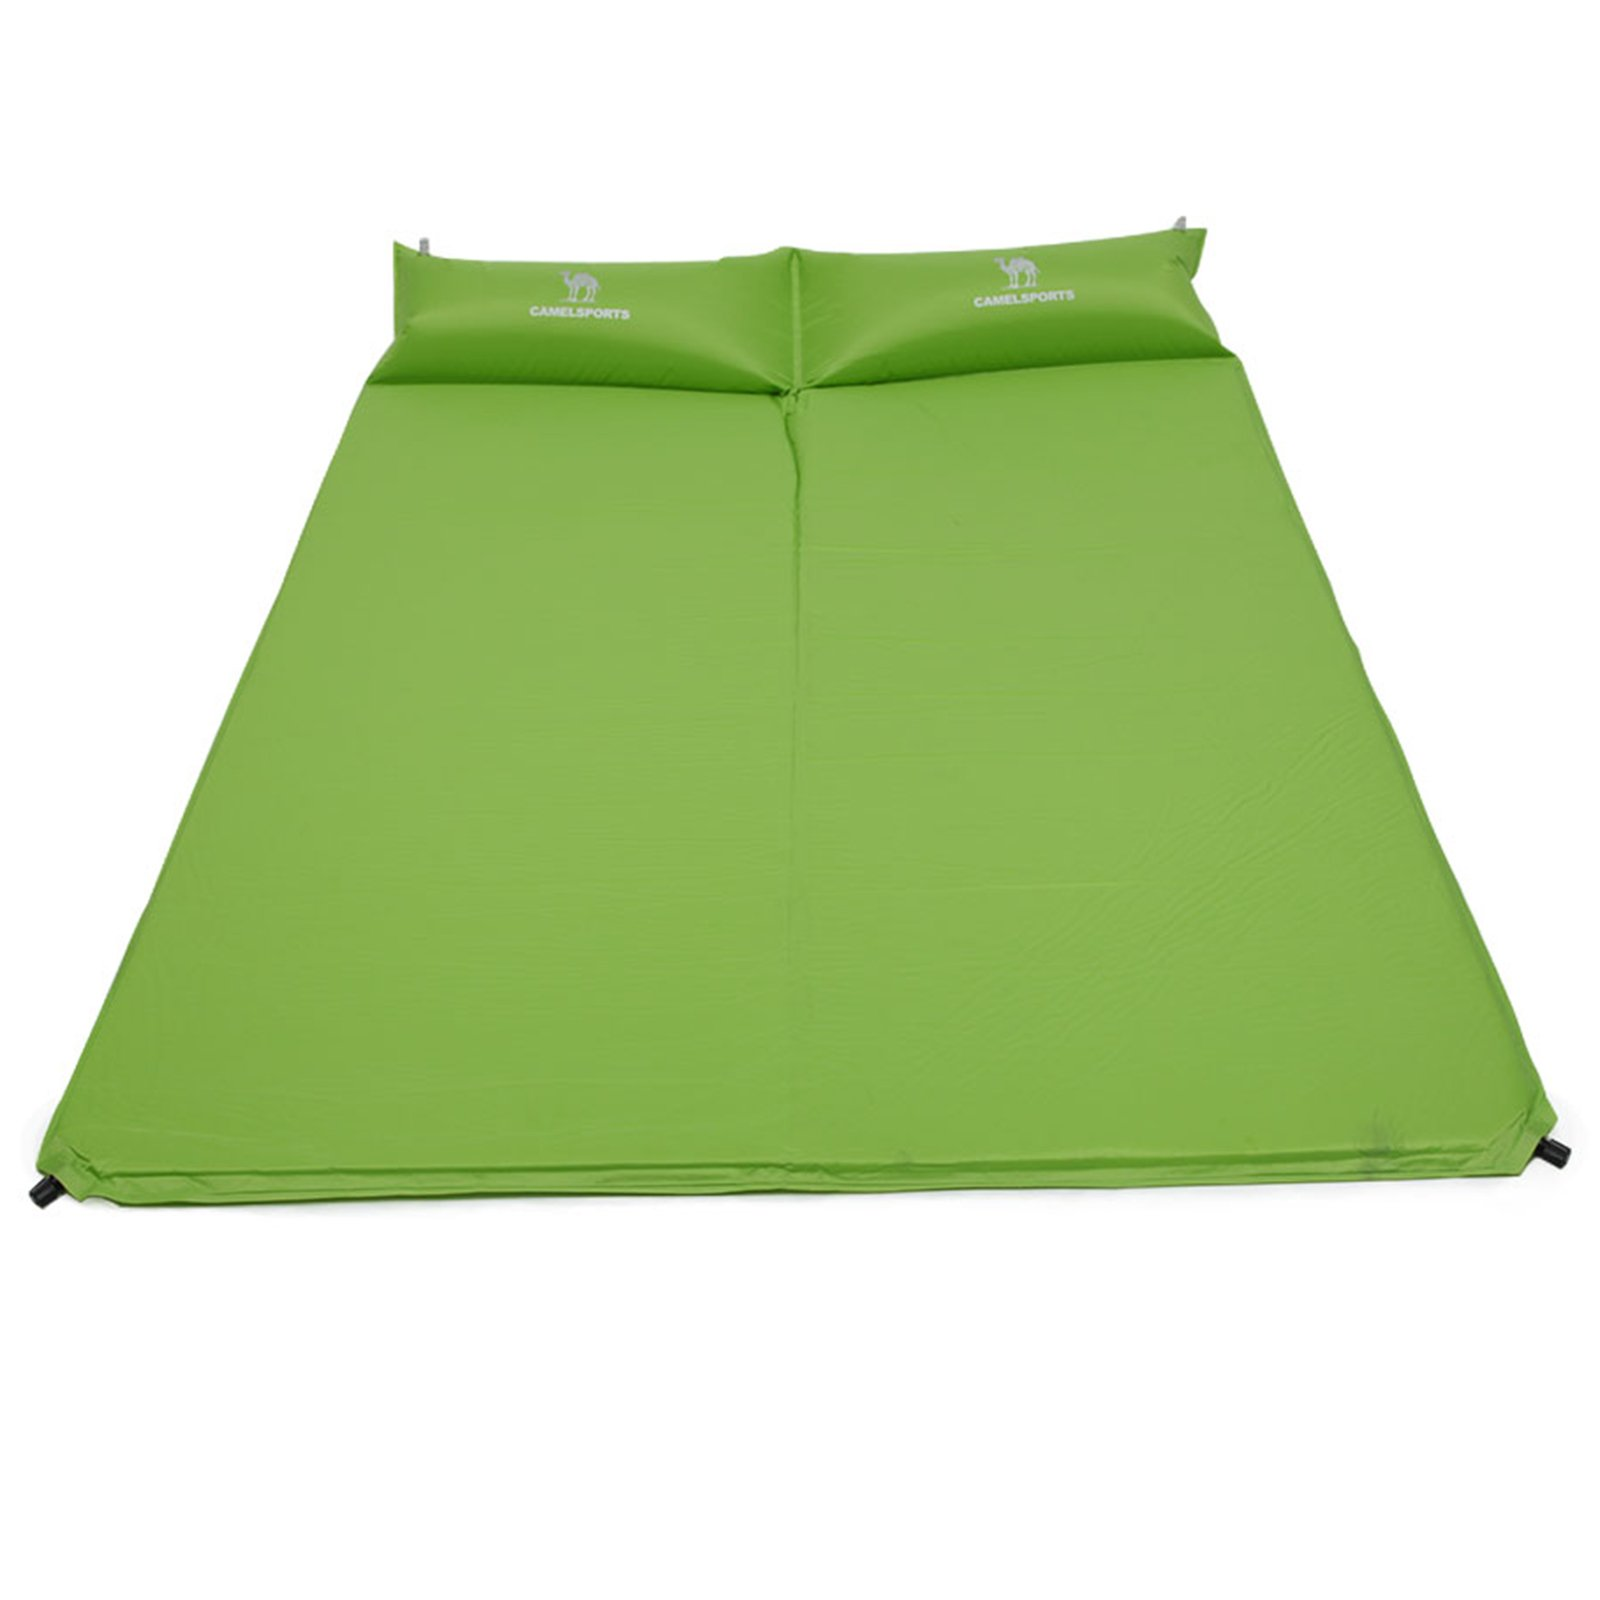 CAMEL Double Self-Inflating Sleeping Pad with Attached Pillow, Comfortable for 2 Person Camping, Hiking, Beach by CAMEL